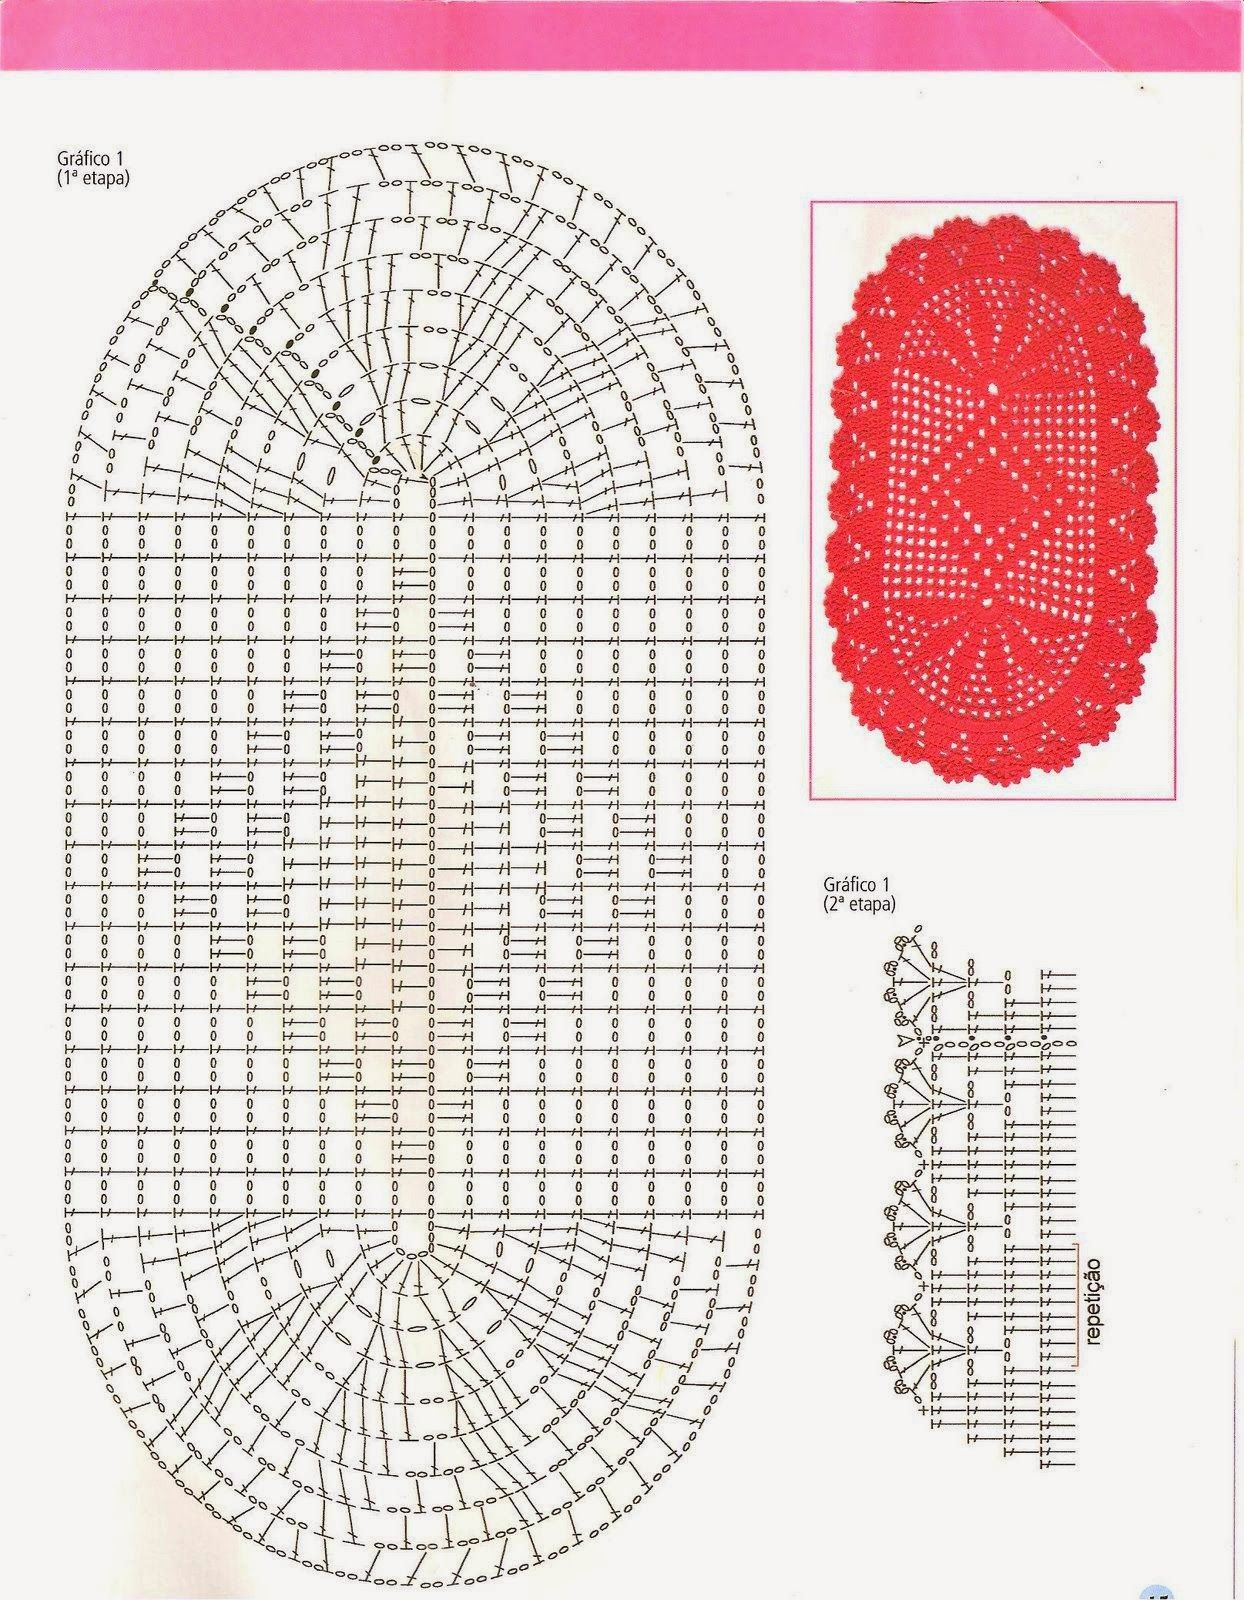 Pin By Vania Montecino On Croch Pinterest Crochet Oval Doily Diagram This Was Discovered Vir